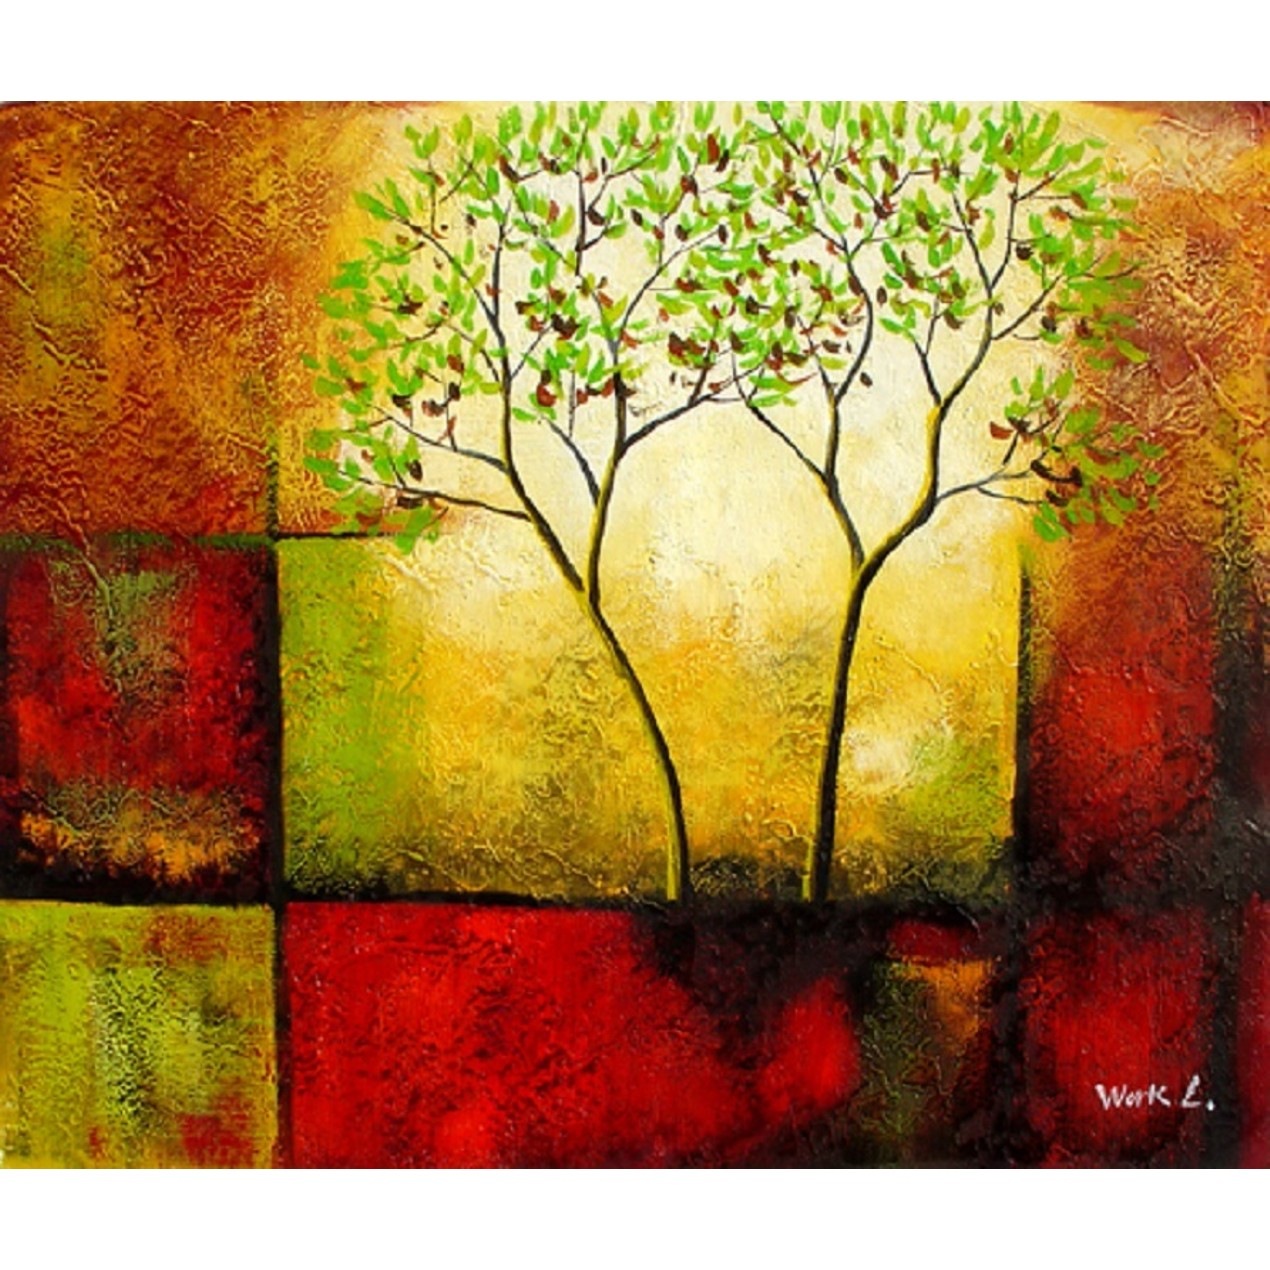 Tree Of Life Reproduction Huge Oil Painting On Canvas Hand Made